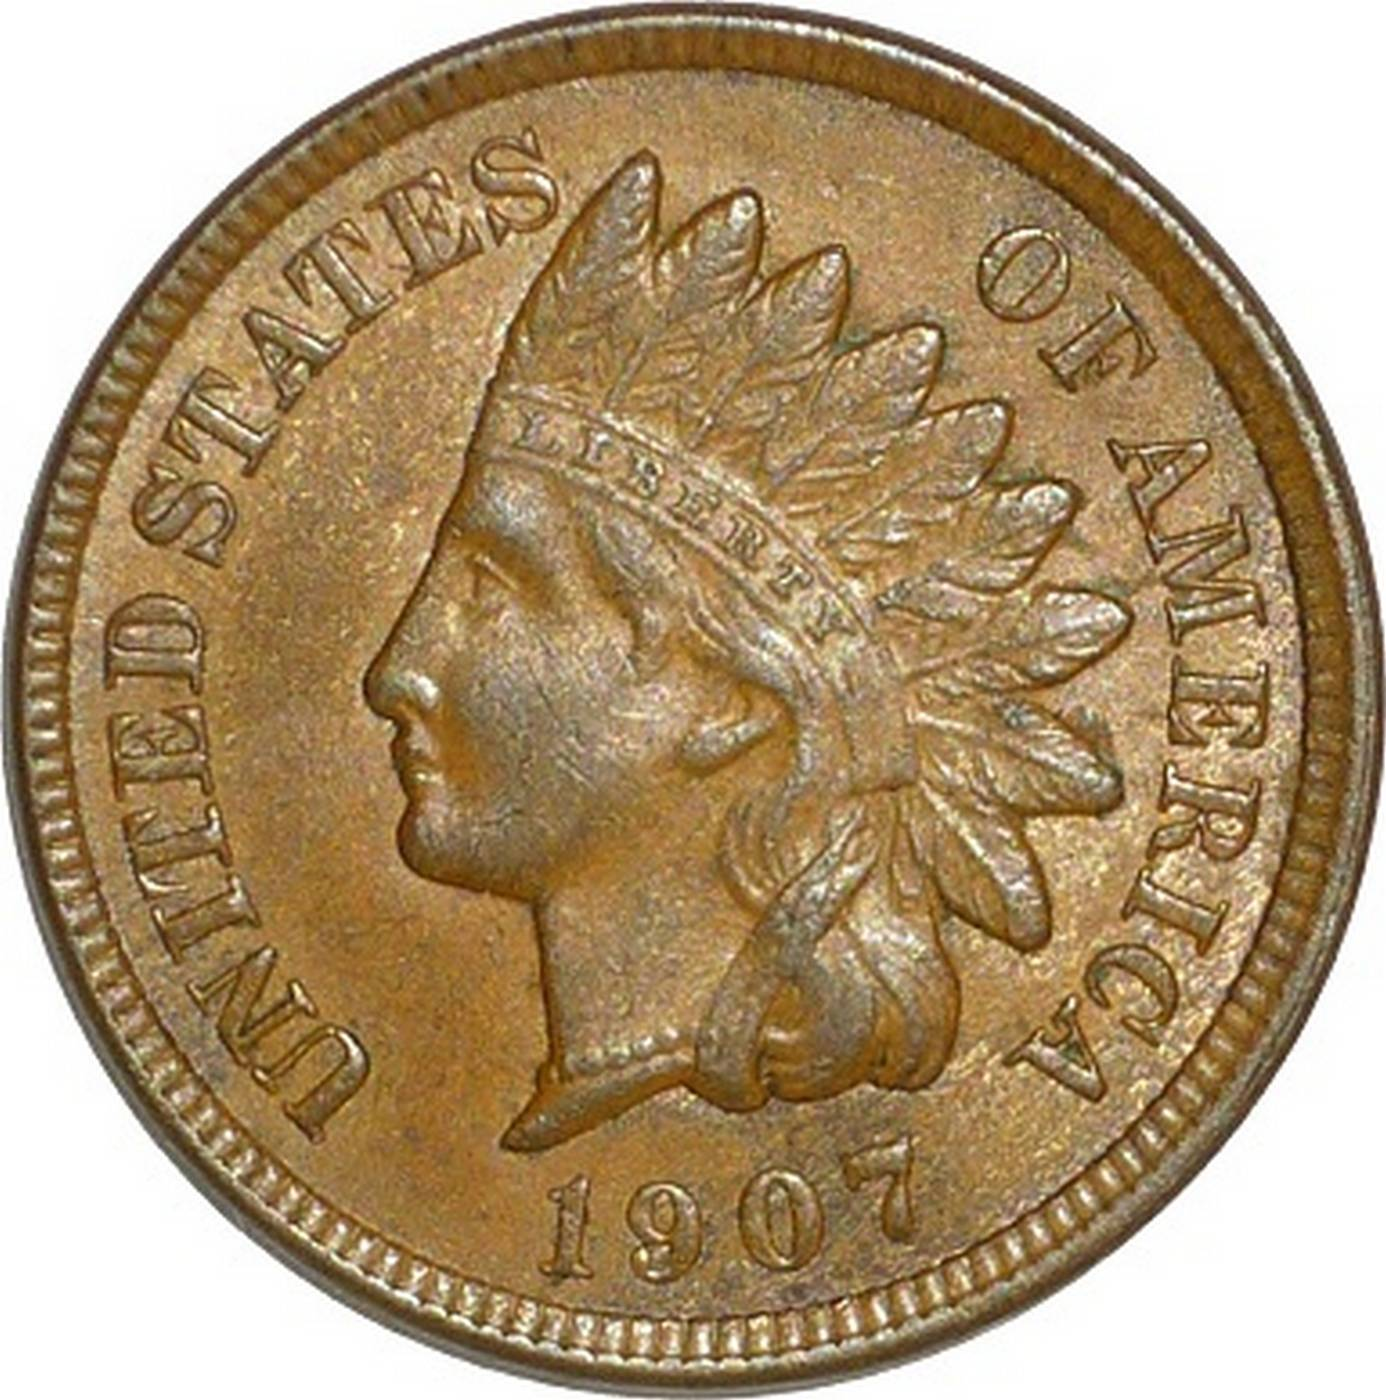 1907 Obverse of CUD-002 - Indian Head Penny - Photo by David Poliquin